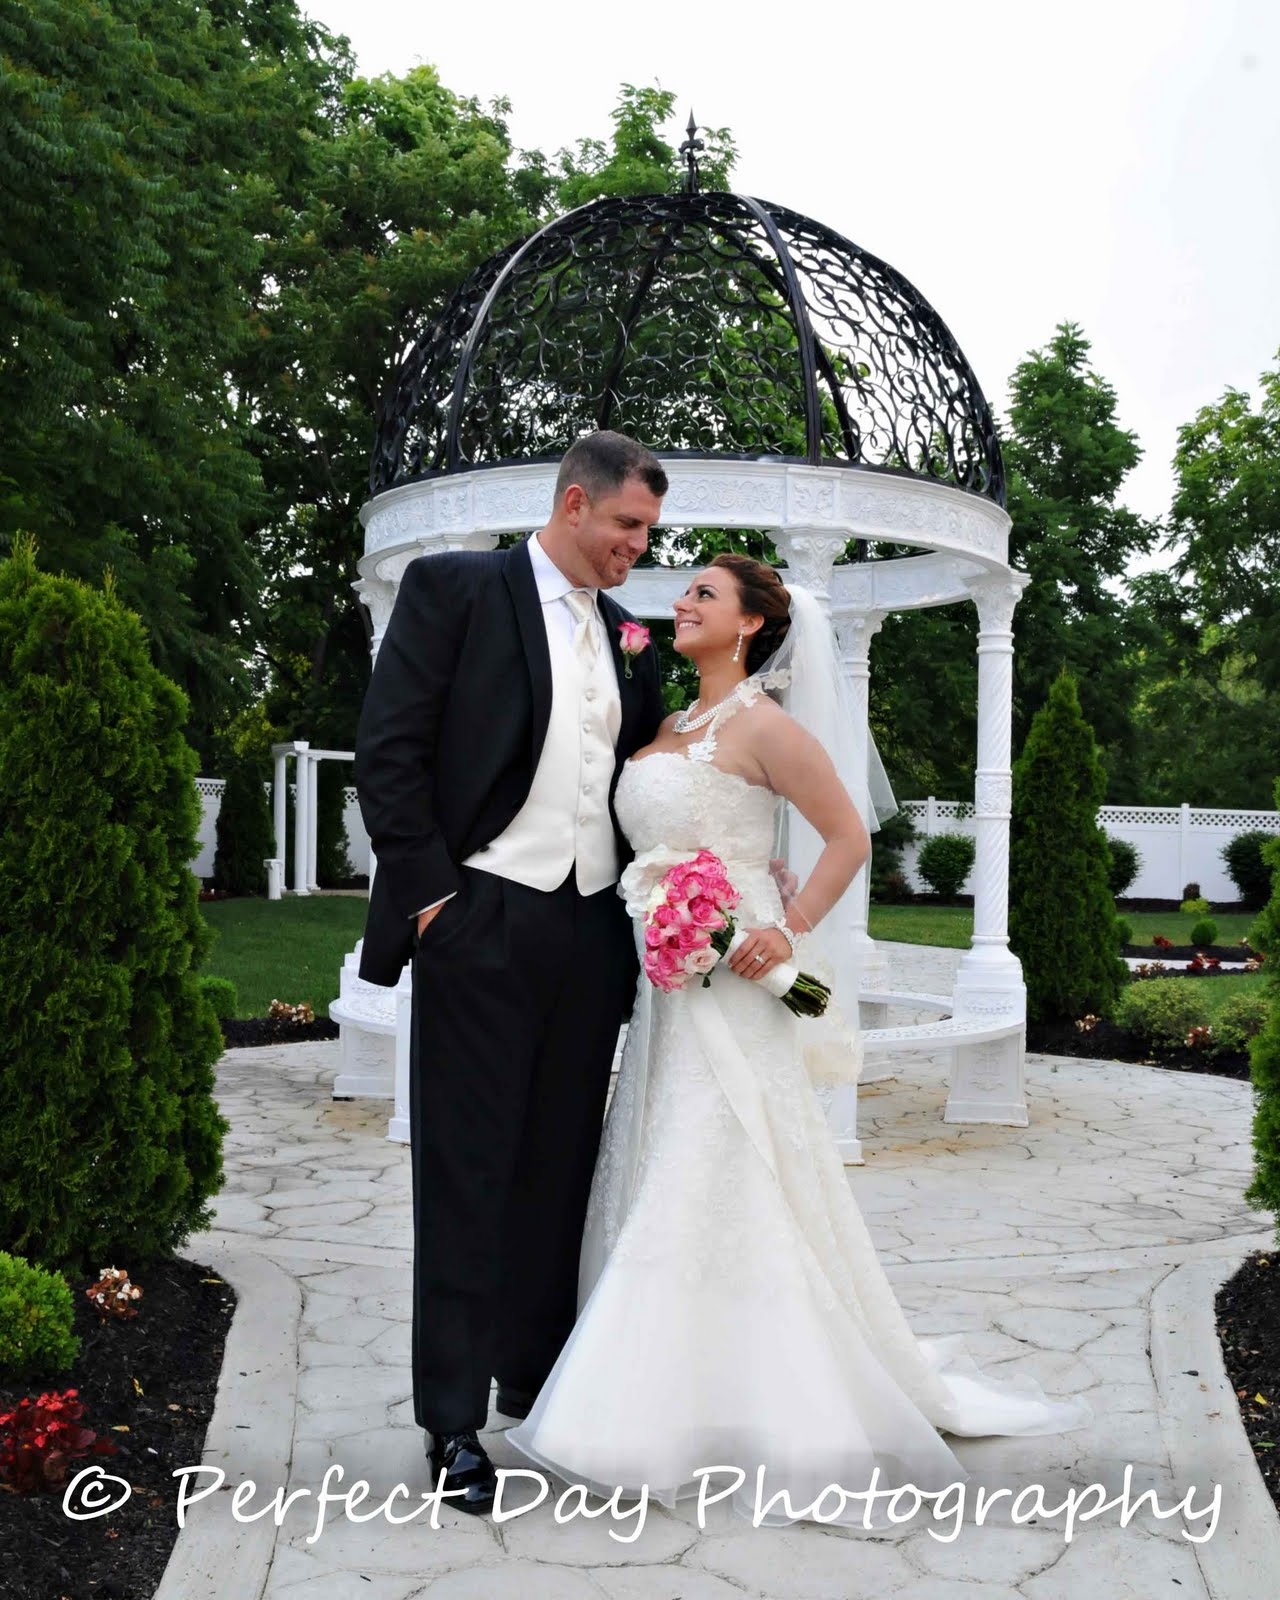 Perfect Day Photography Christine And Zack Wedding